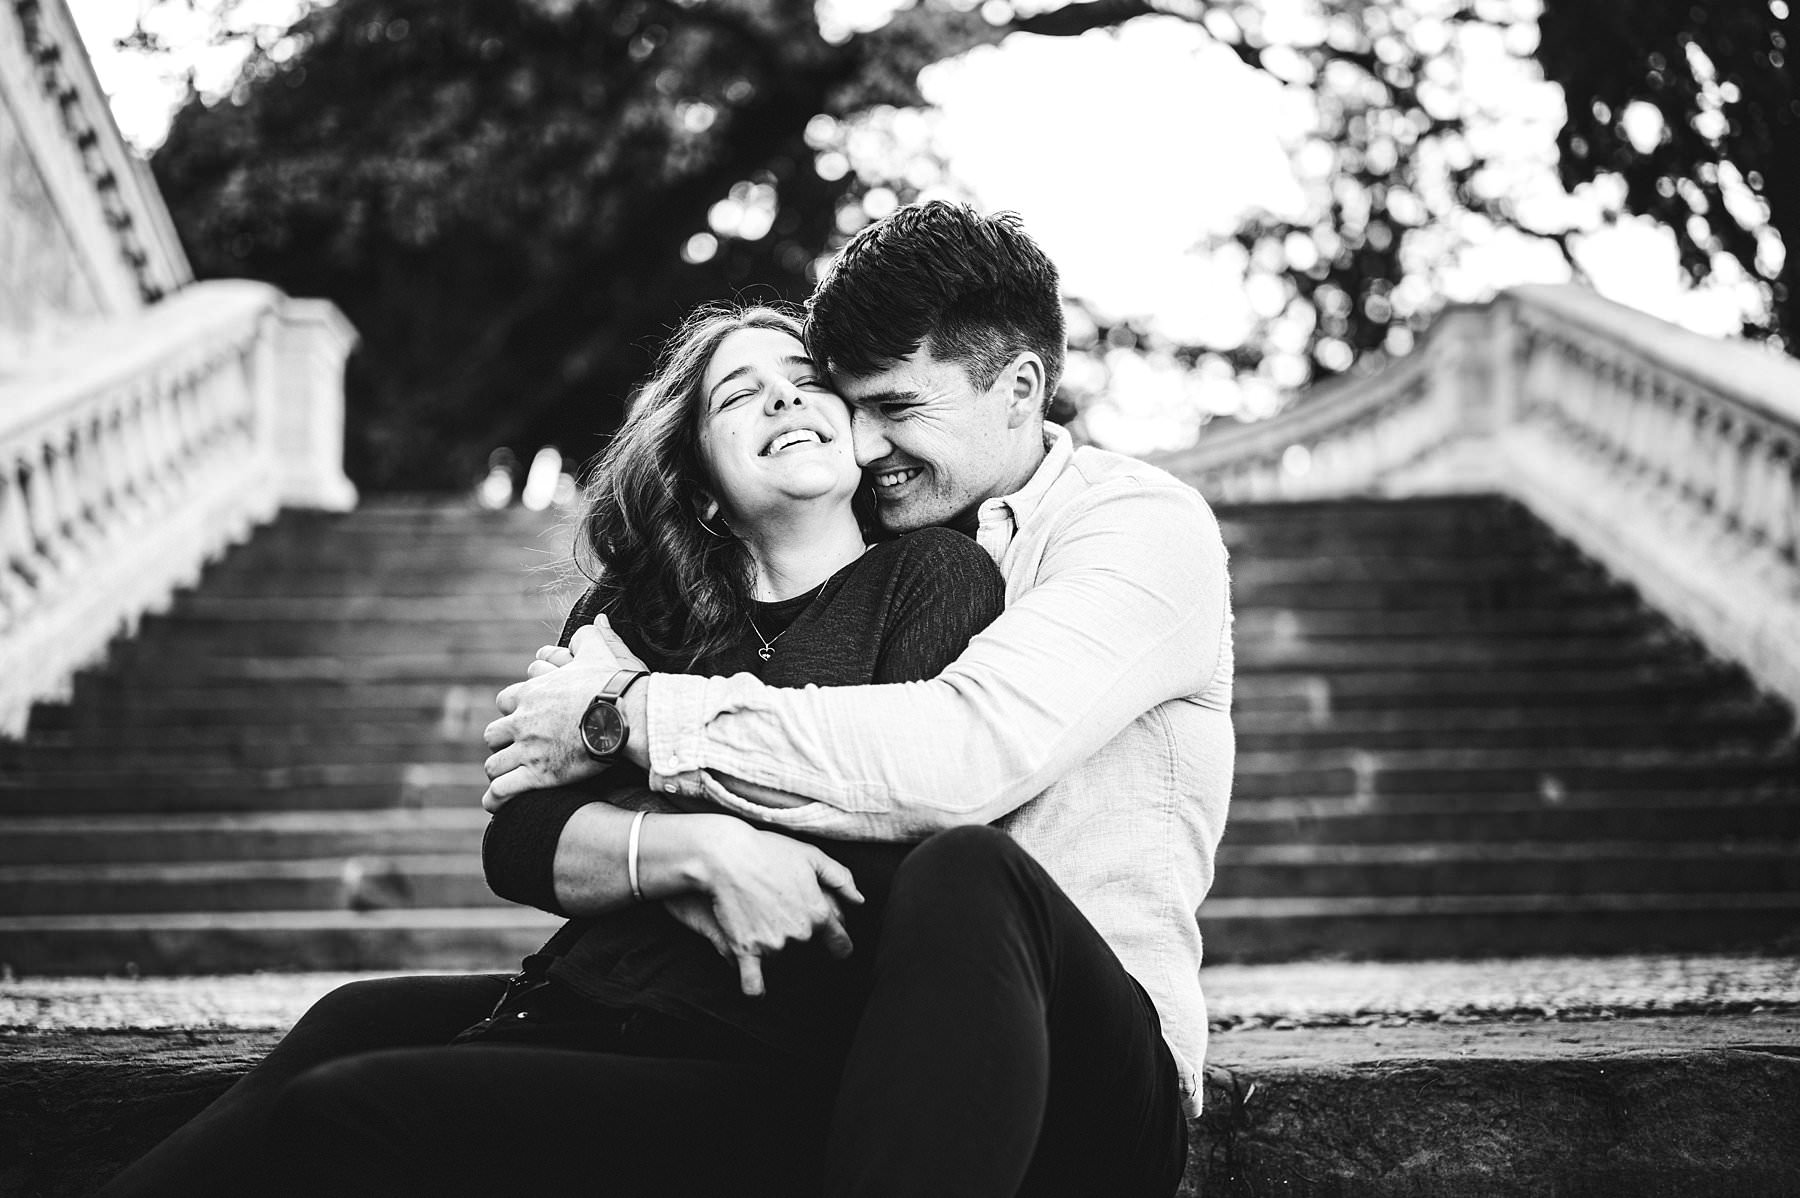 Emotional engagement photo by a lovely Australian couple during an holiday in Florence at Christmas time. I really love these two people who felt free to to express their love to another with hugs, kisses and heartfelt smiles